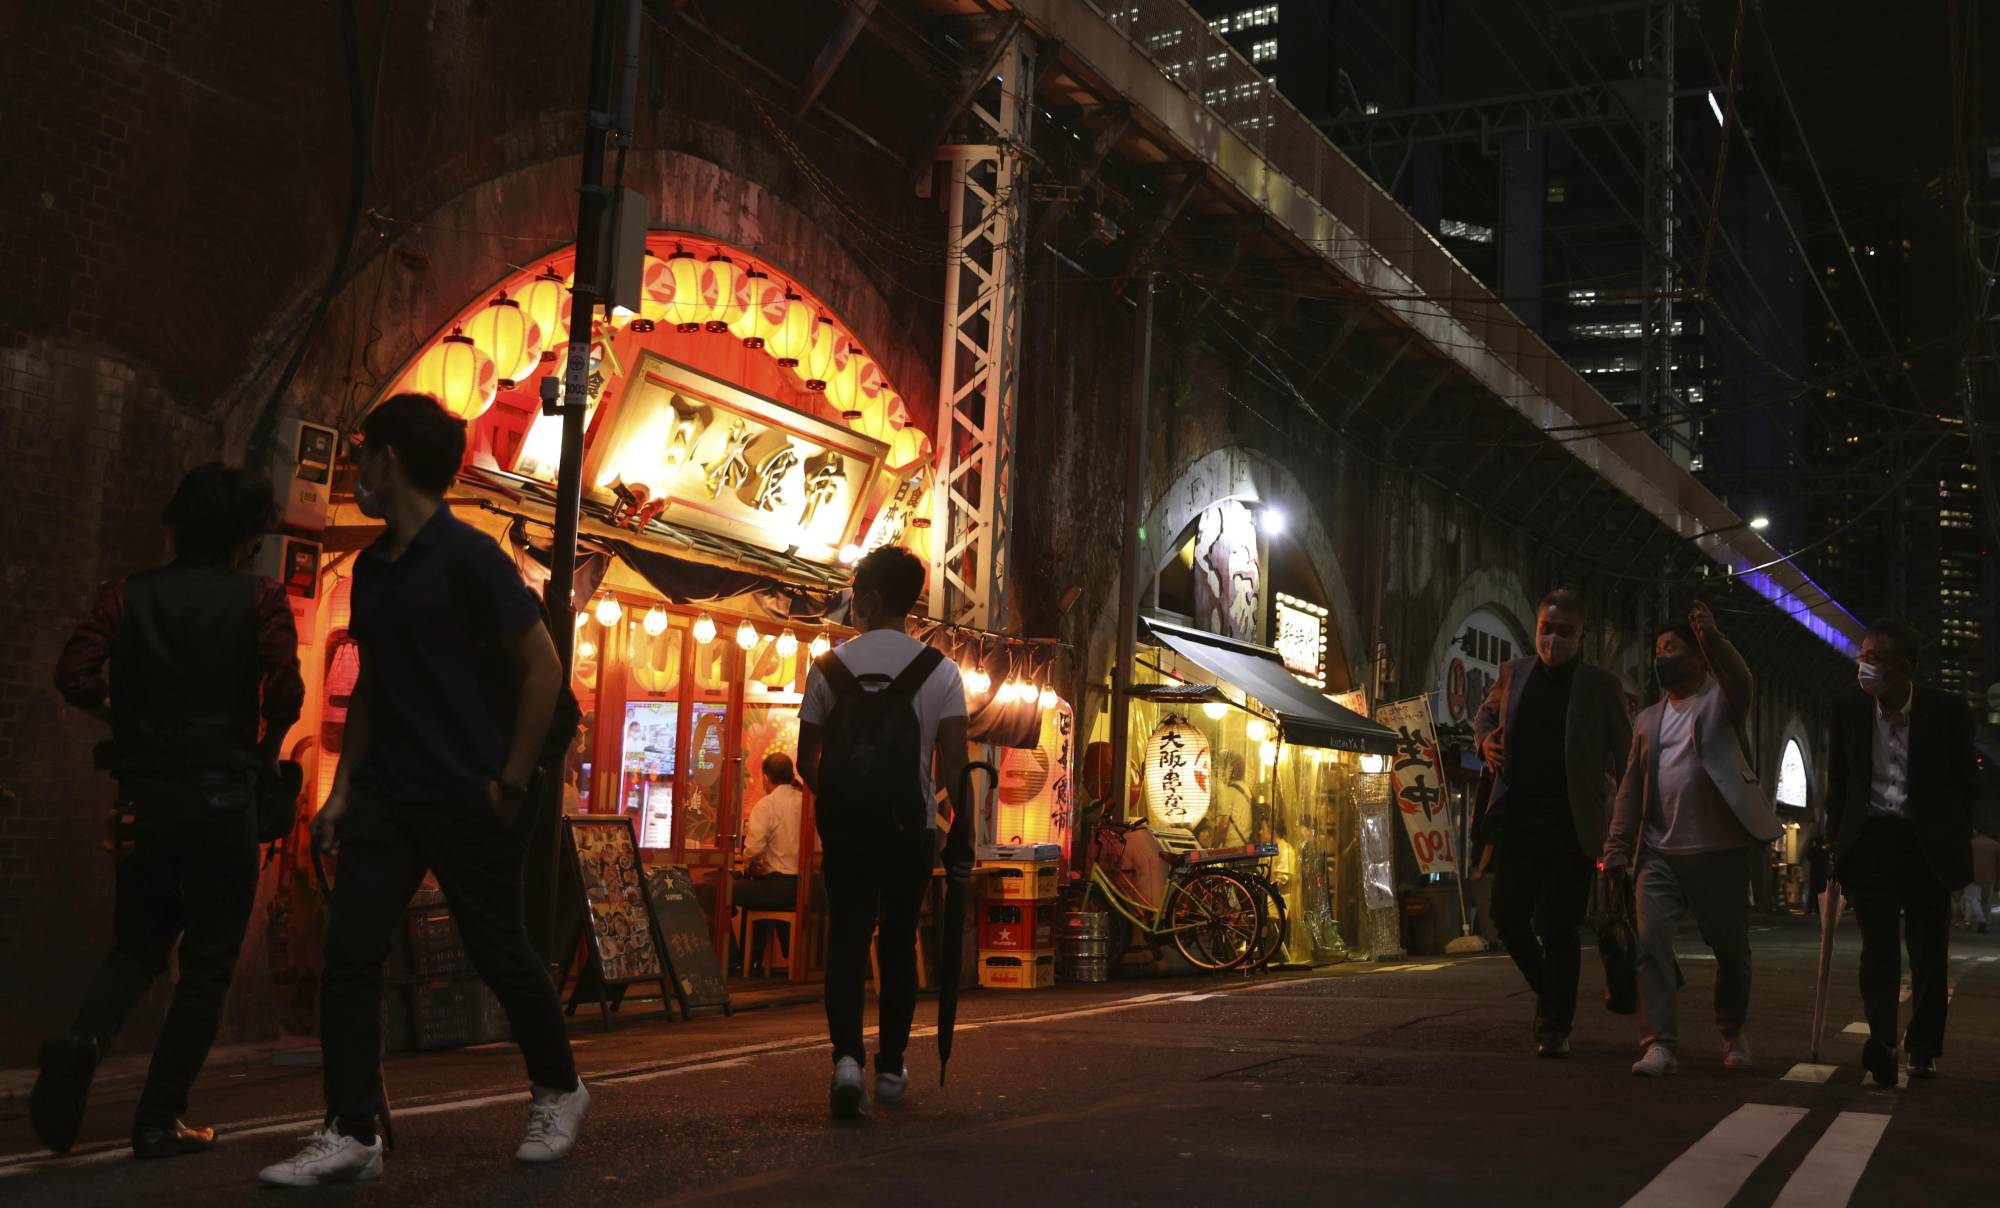 A street in Tokyo's Shimbashi district on Wednesday night | KYODO